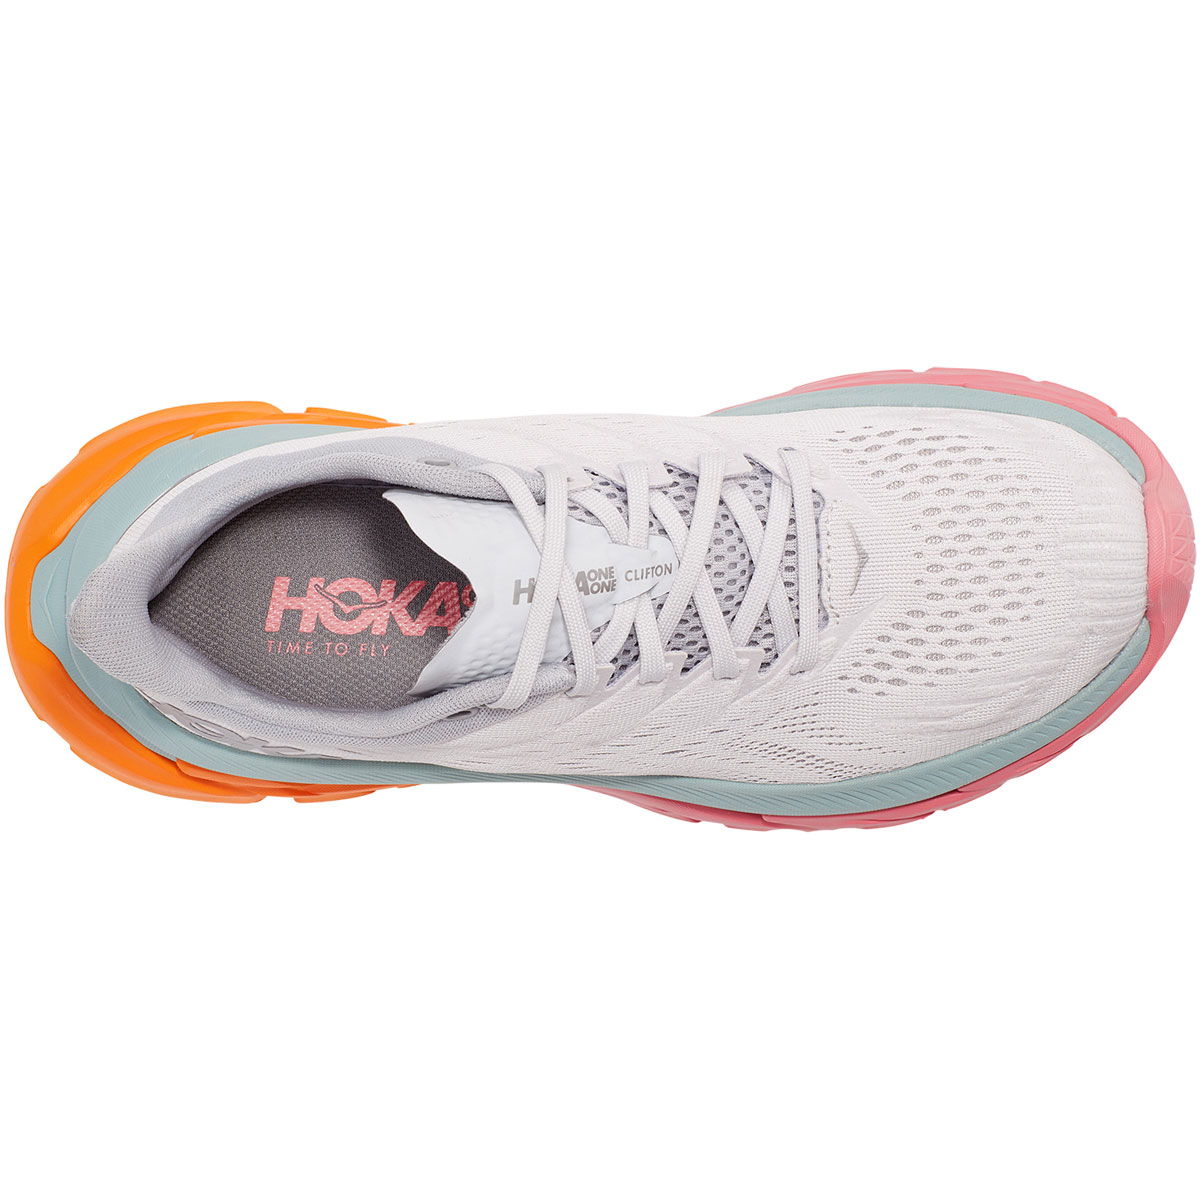 Women's Hoka One One Clifton Edge Running Shoe - Color: Nimbus Cloud/Lunar Rock - Size: 5 - Width: Regular, Nimbus Cloud/Lunar Rock, large, image 2